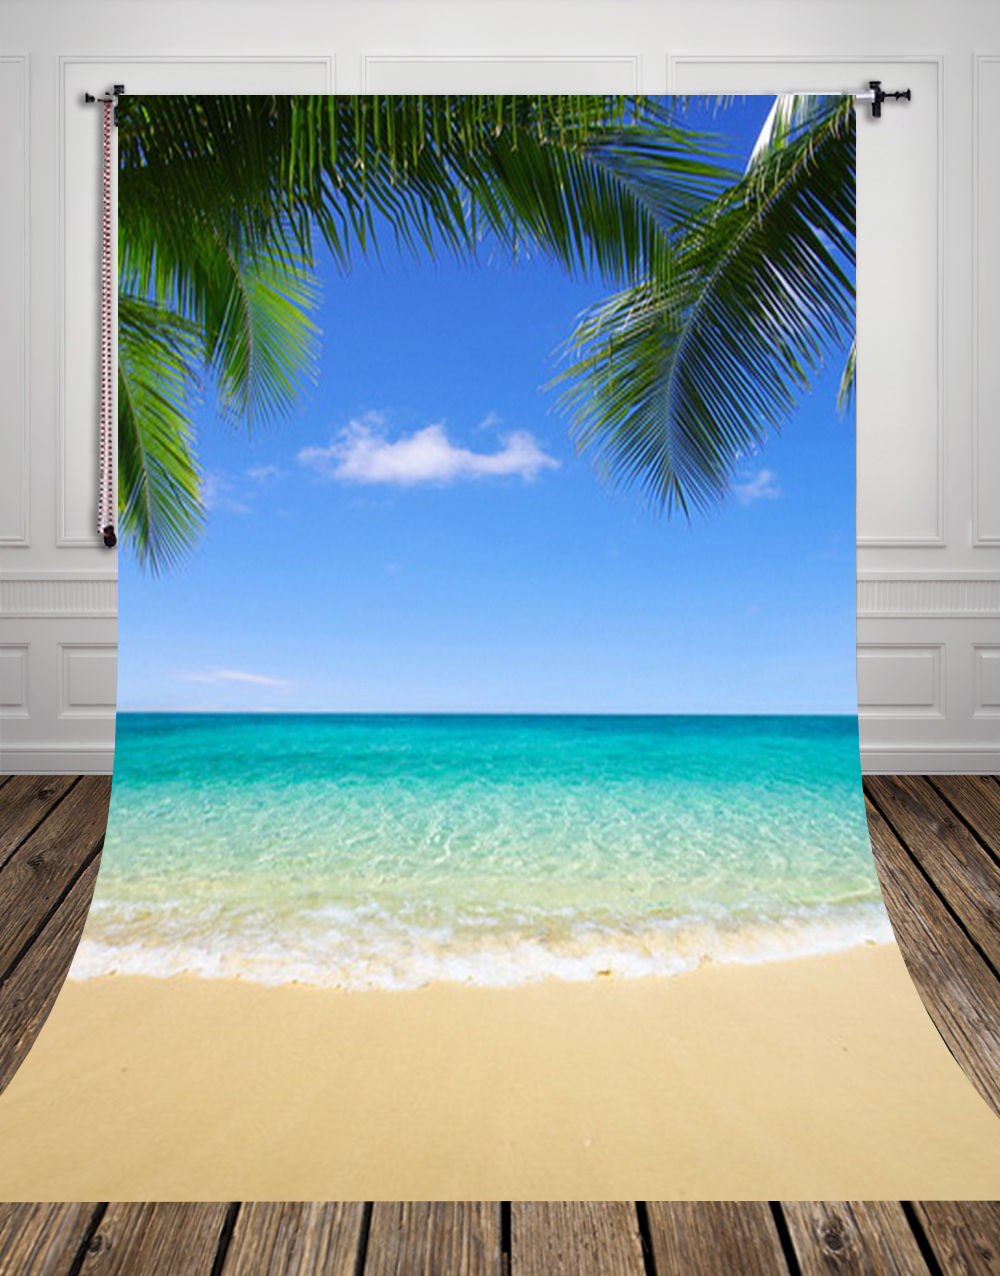 150*220CM Hawaii beach Photography Background Digital Printing Newborn Backdrops For Photo Studio or party D-8538 пенетрон 10кг